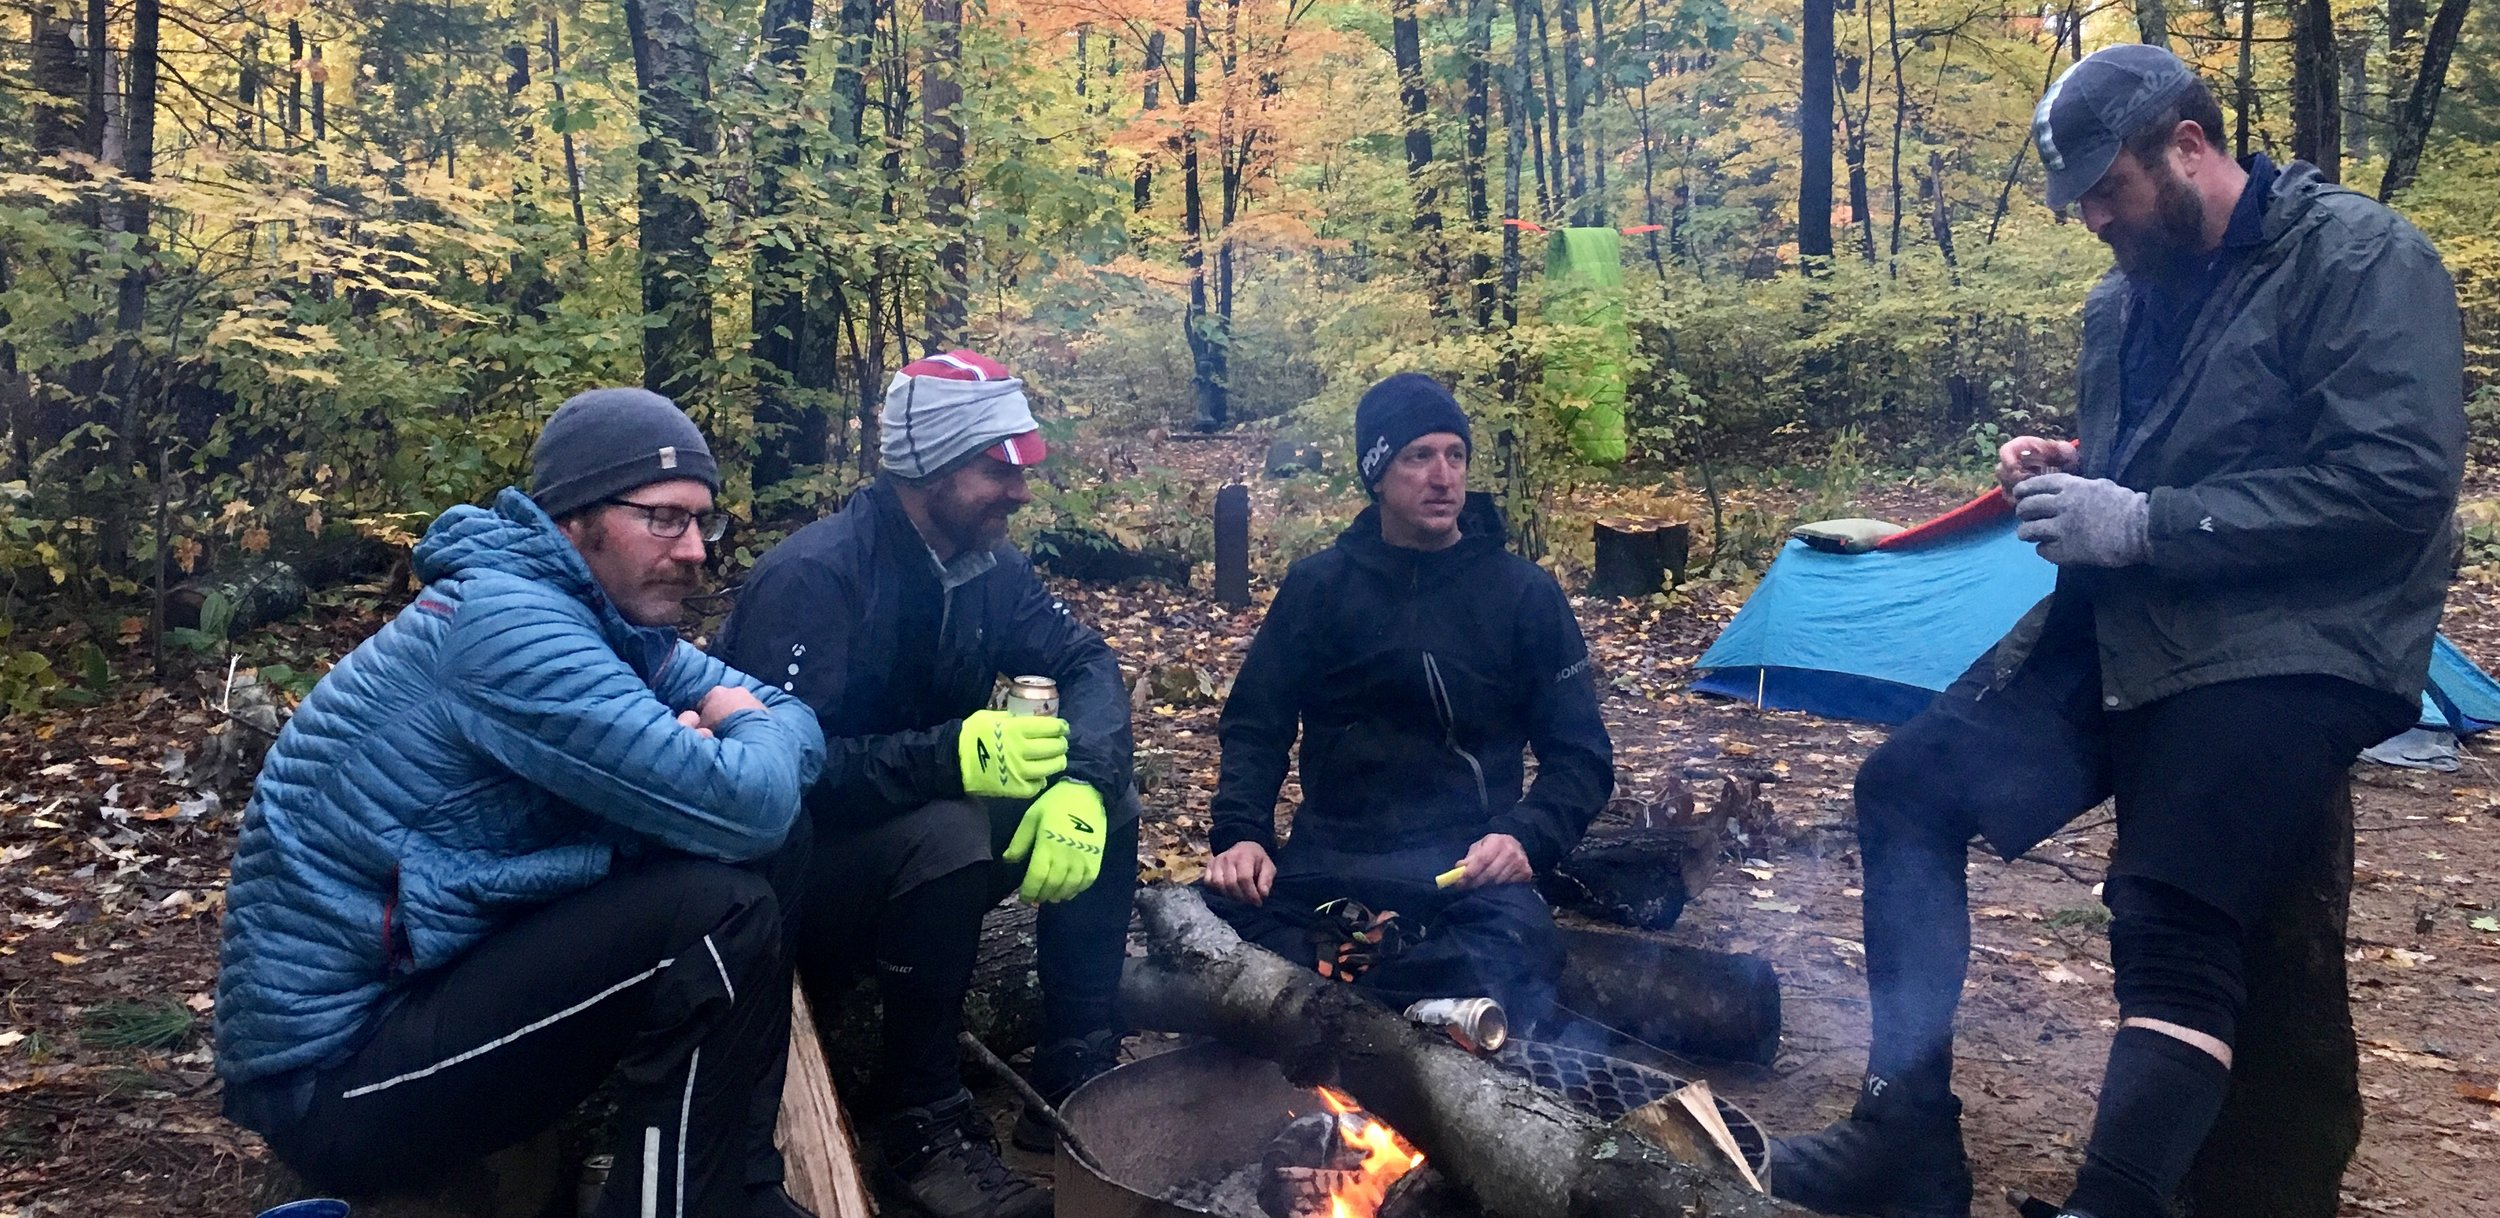 Fireside Chat in Wisconsin north woods with Justin McBride: Bikepacker, Gravel racer, Friend. L-R Justin, Stu Garwick, Troy Edler, Mike Feller